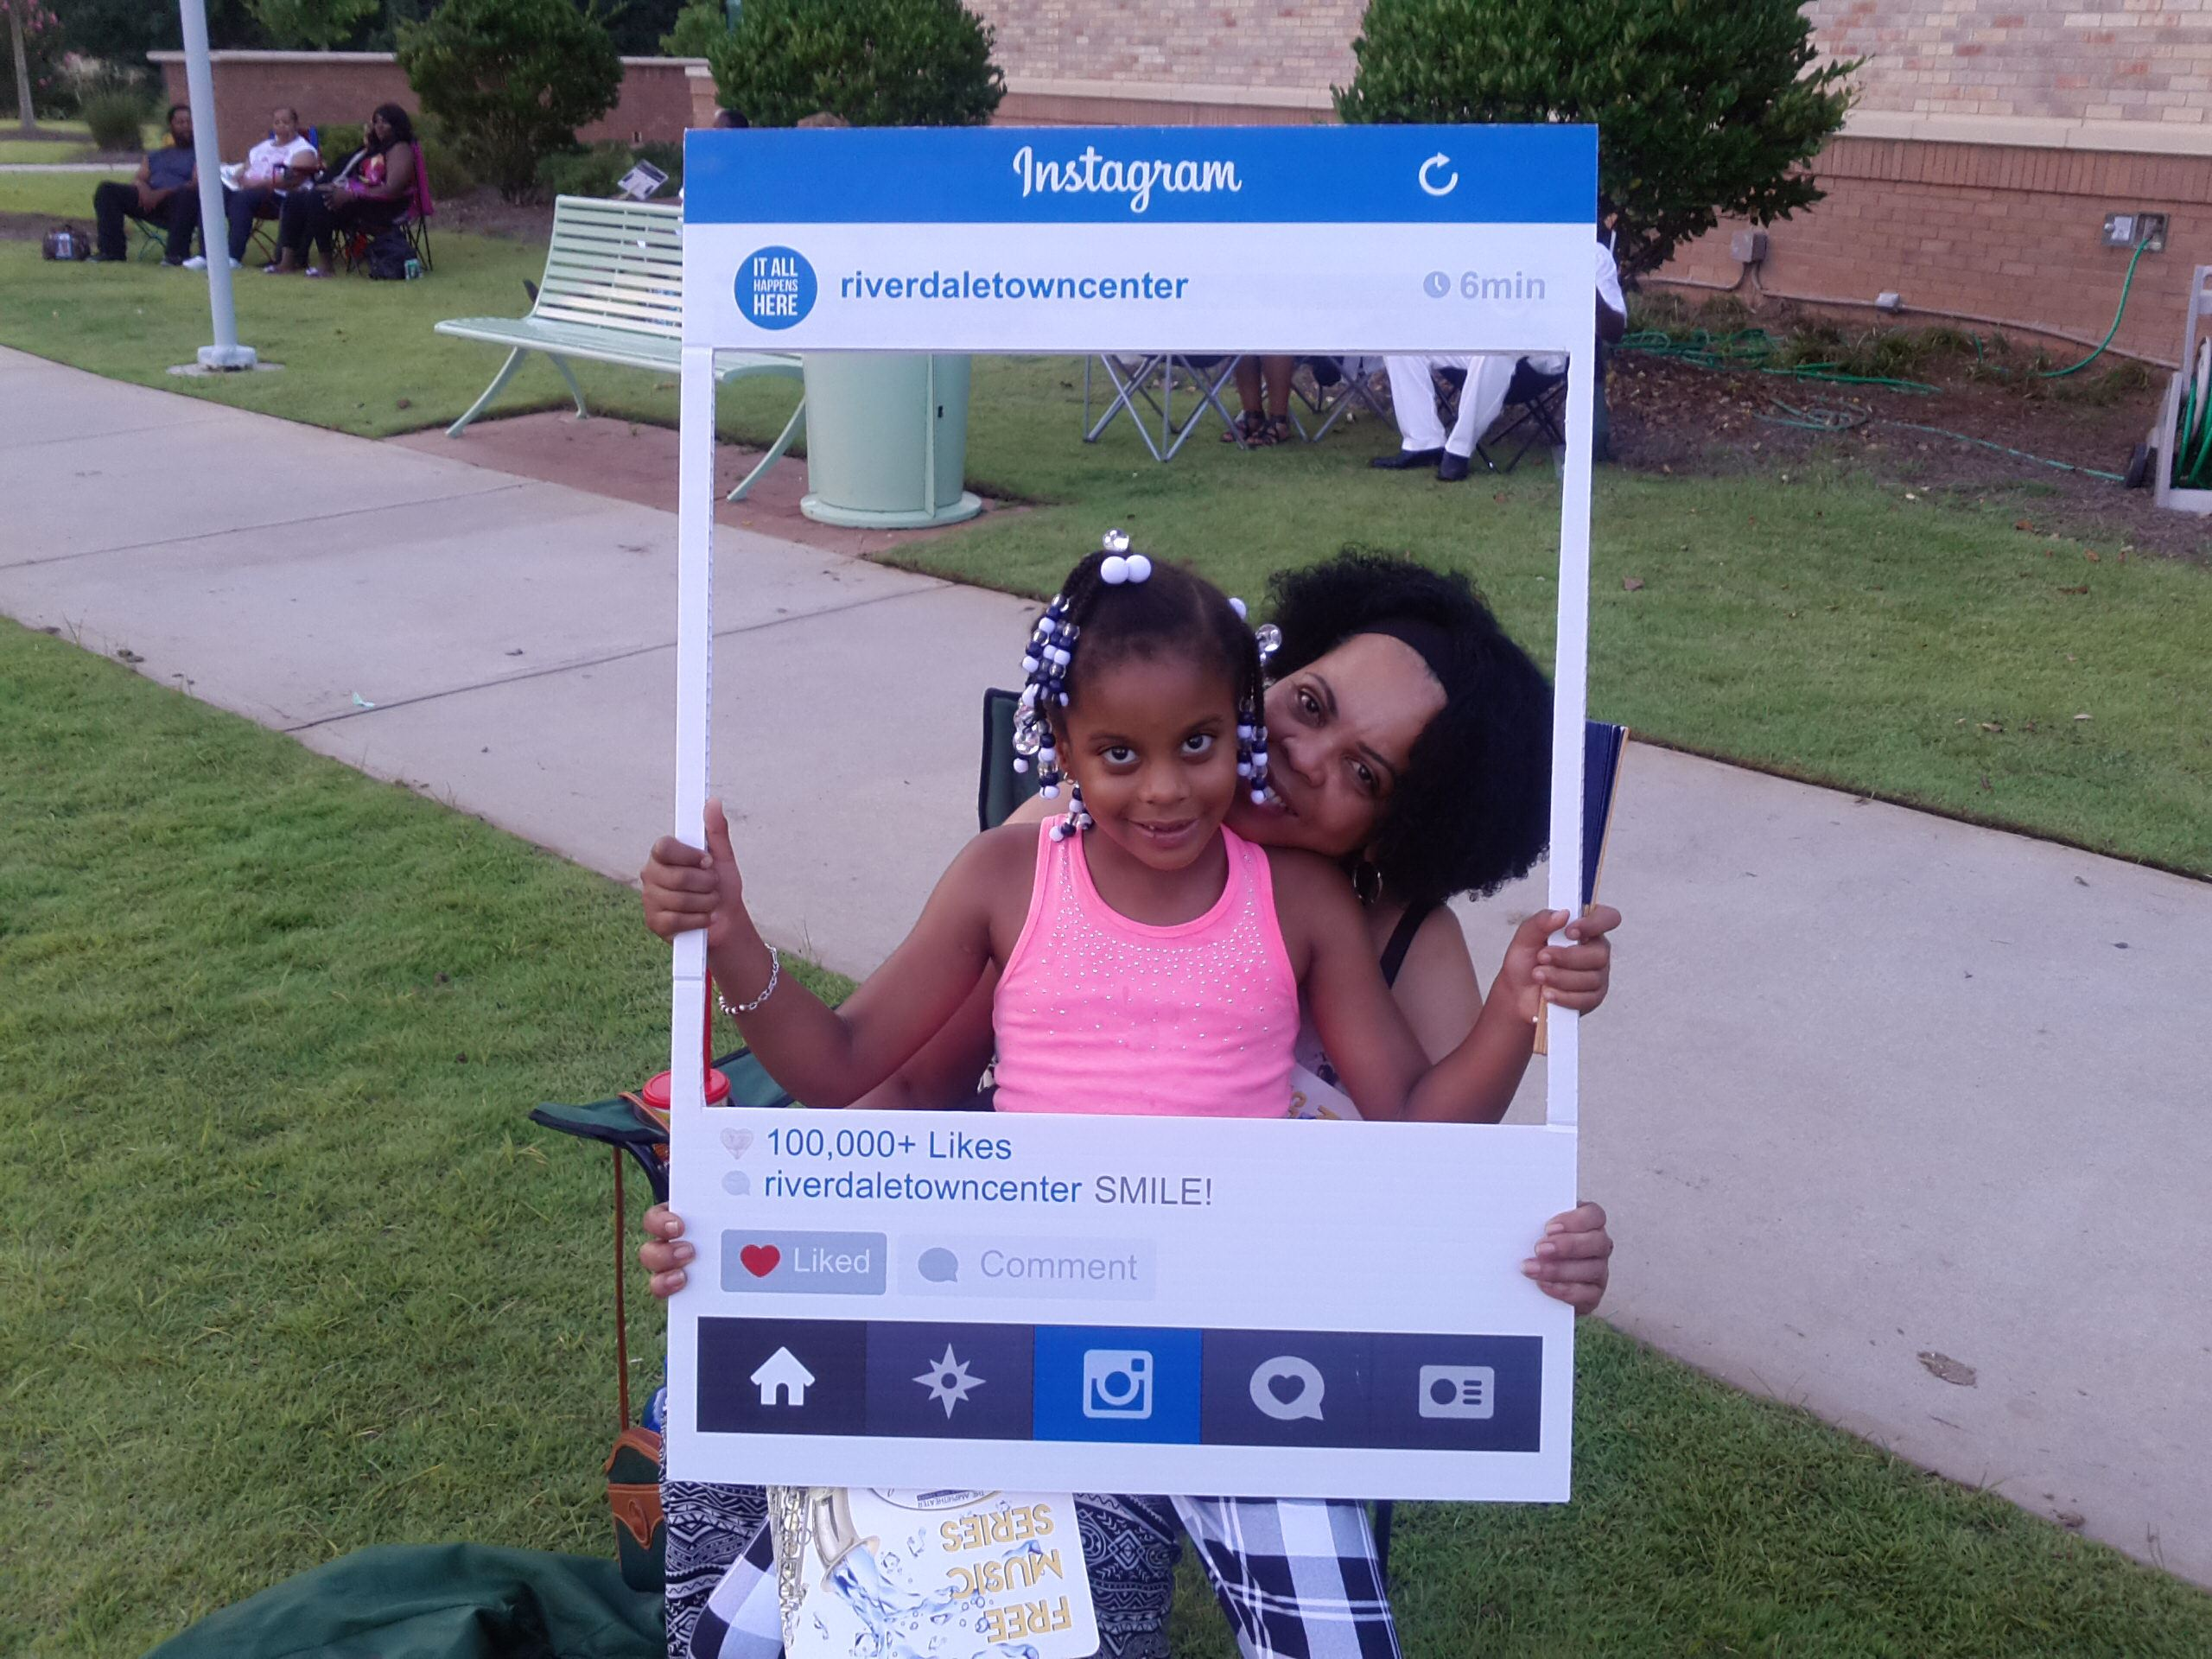 Woman and Little Girl Posing with Instagram Cut Out